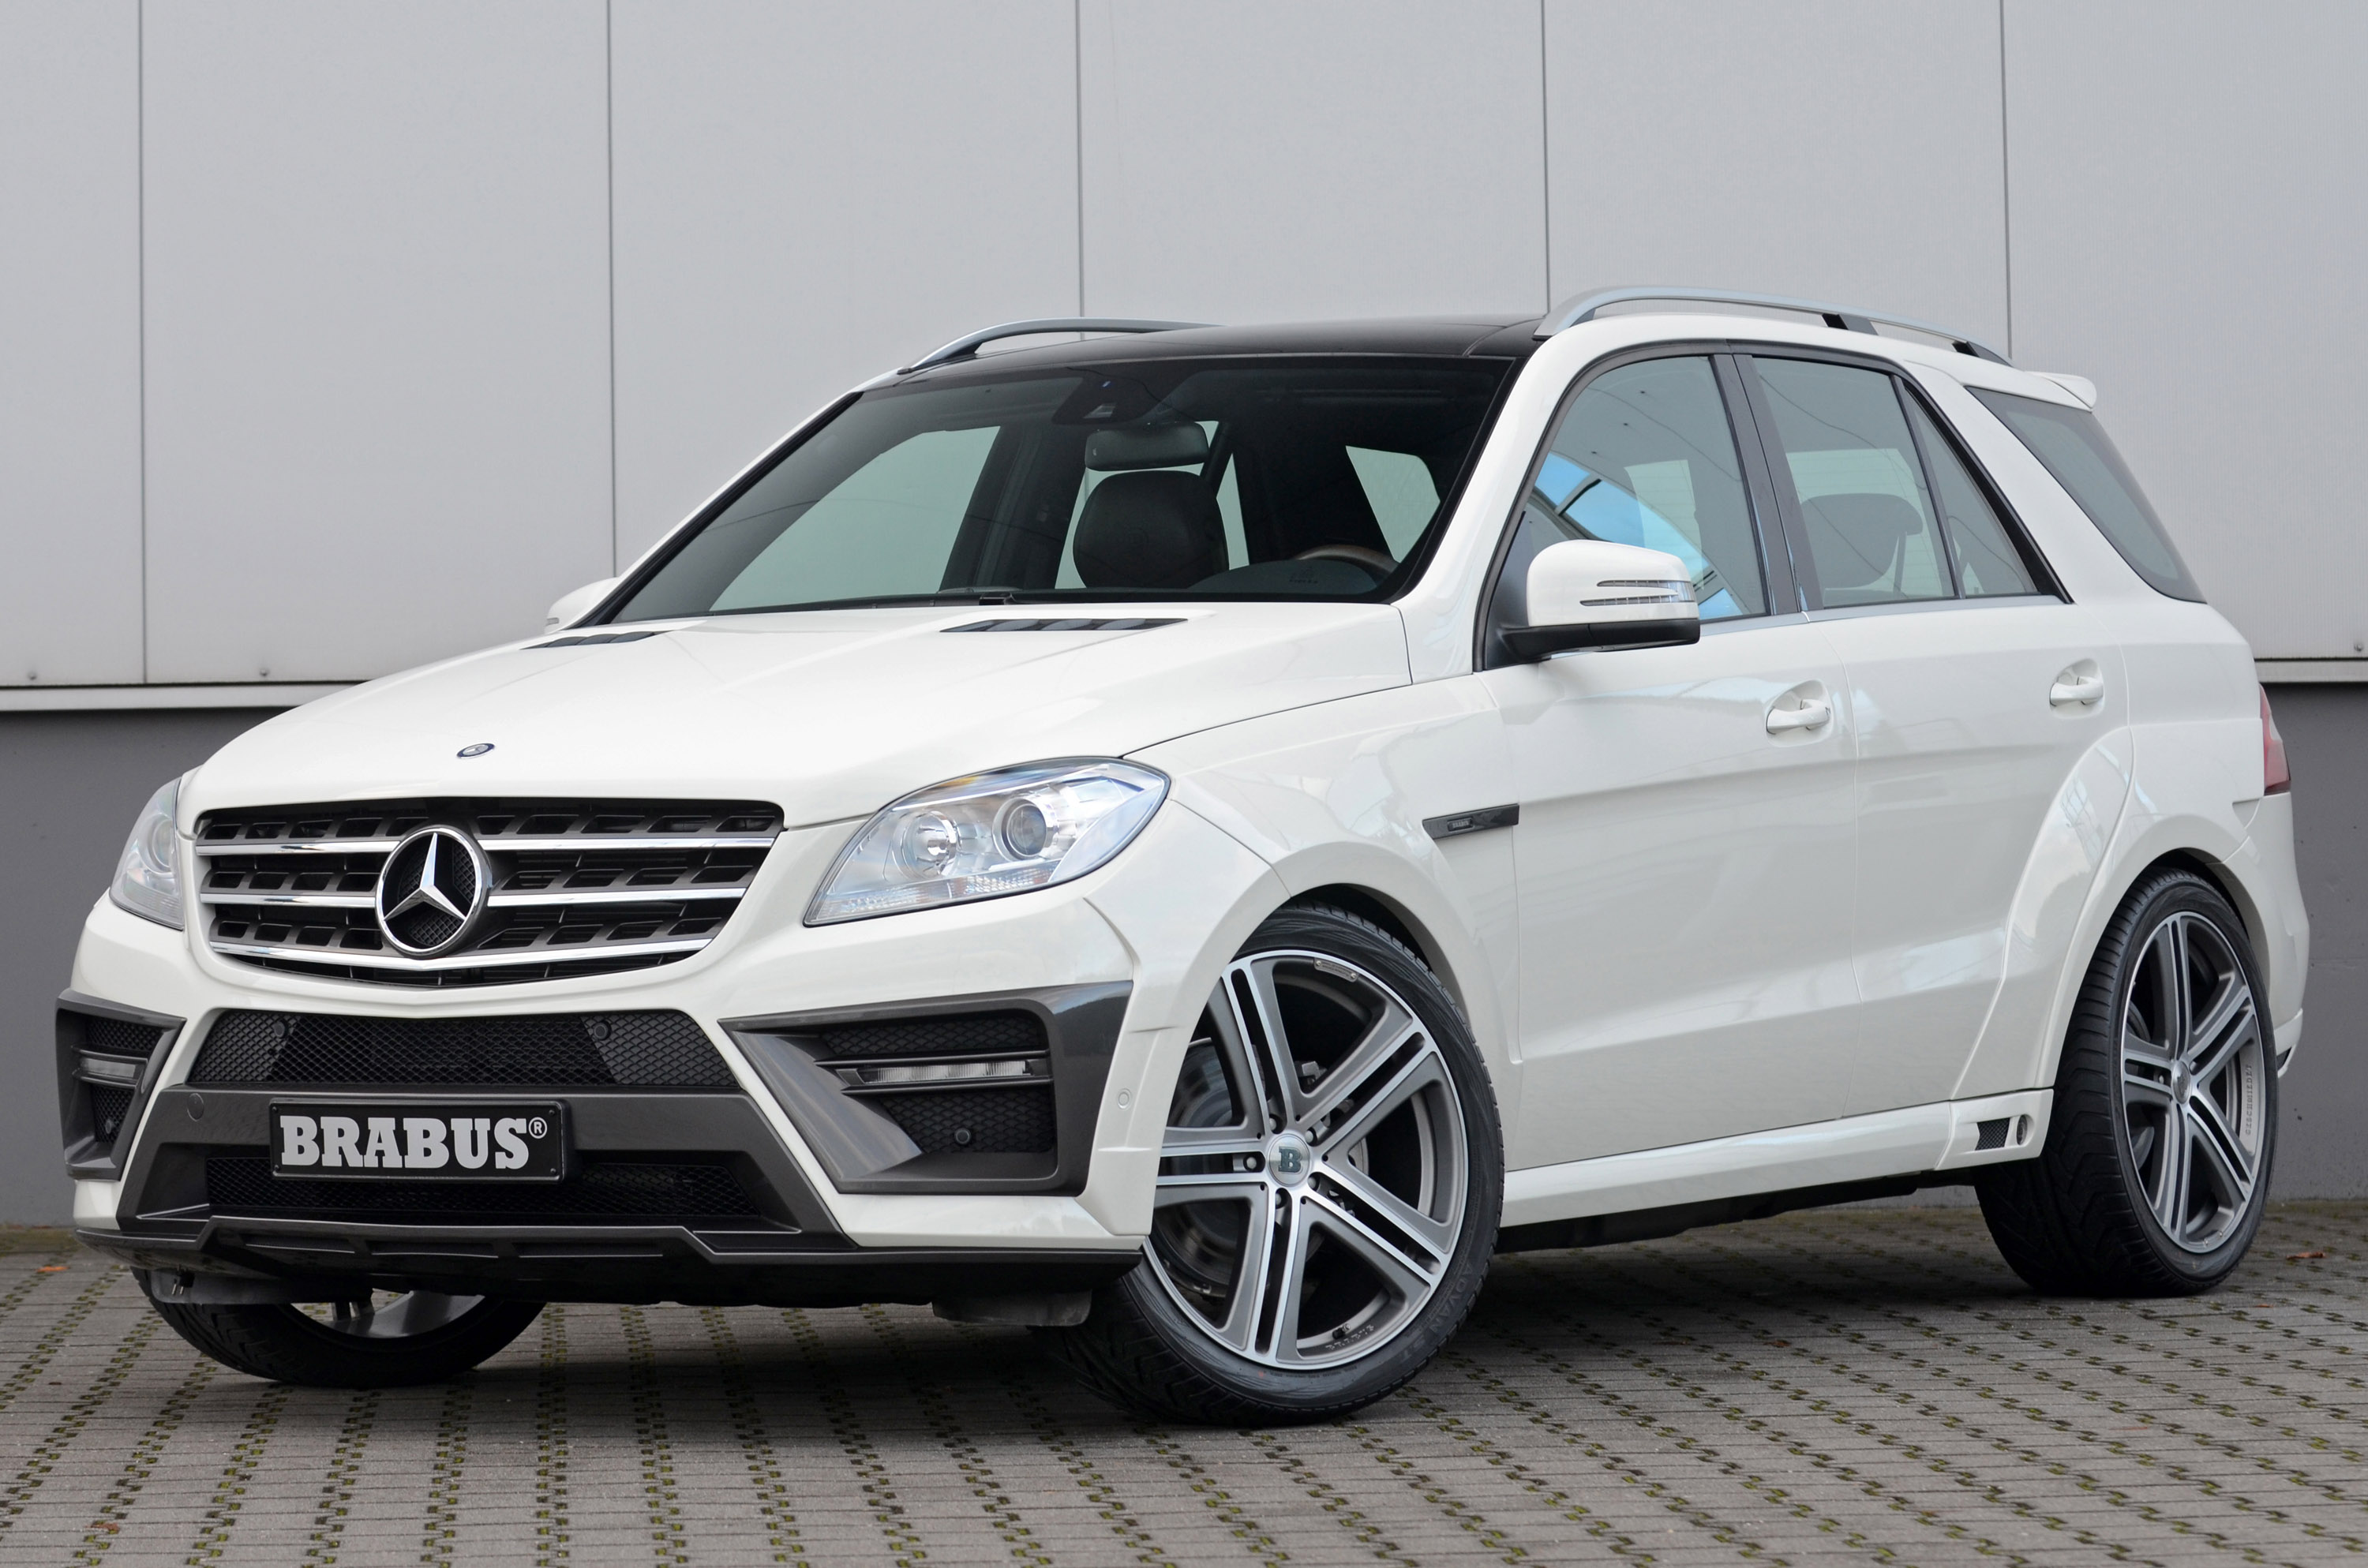 Brabus 2012 mercedes benz ml widestar for Mercedes benz cars